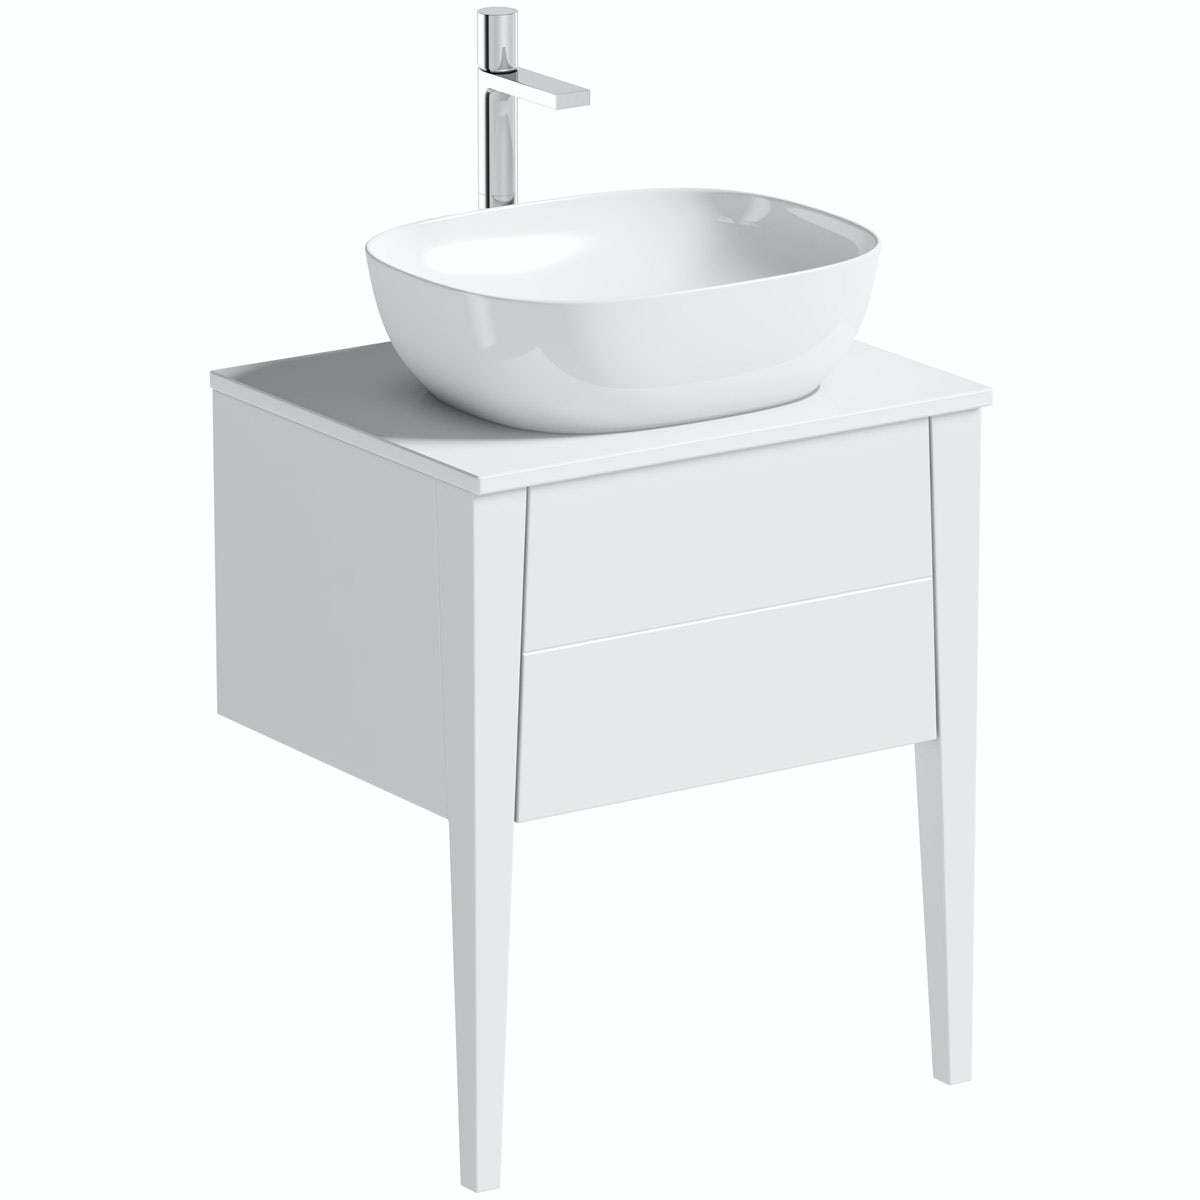 Mode Hale white gloss countertop vanity unit and basin 600mm